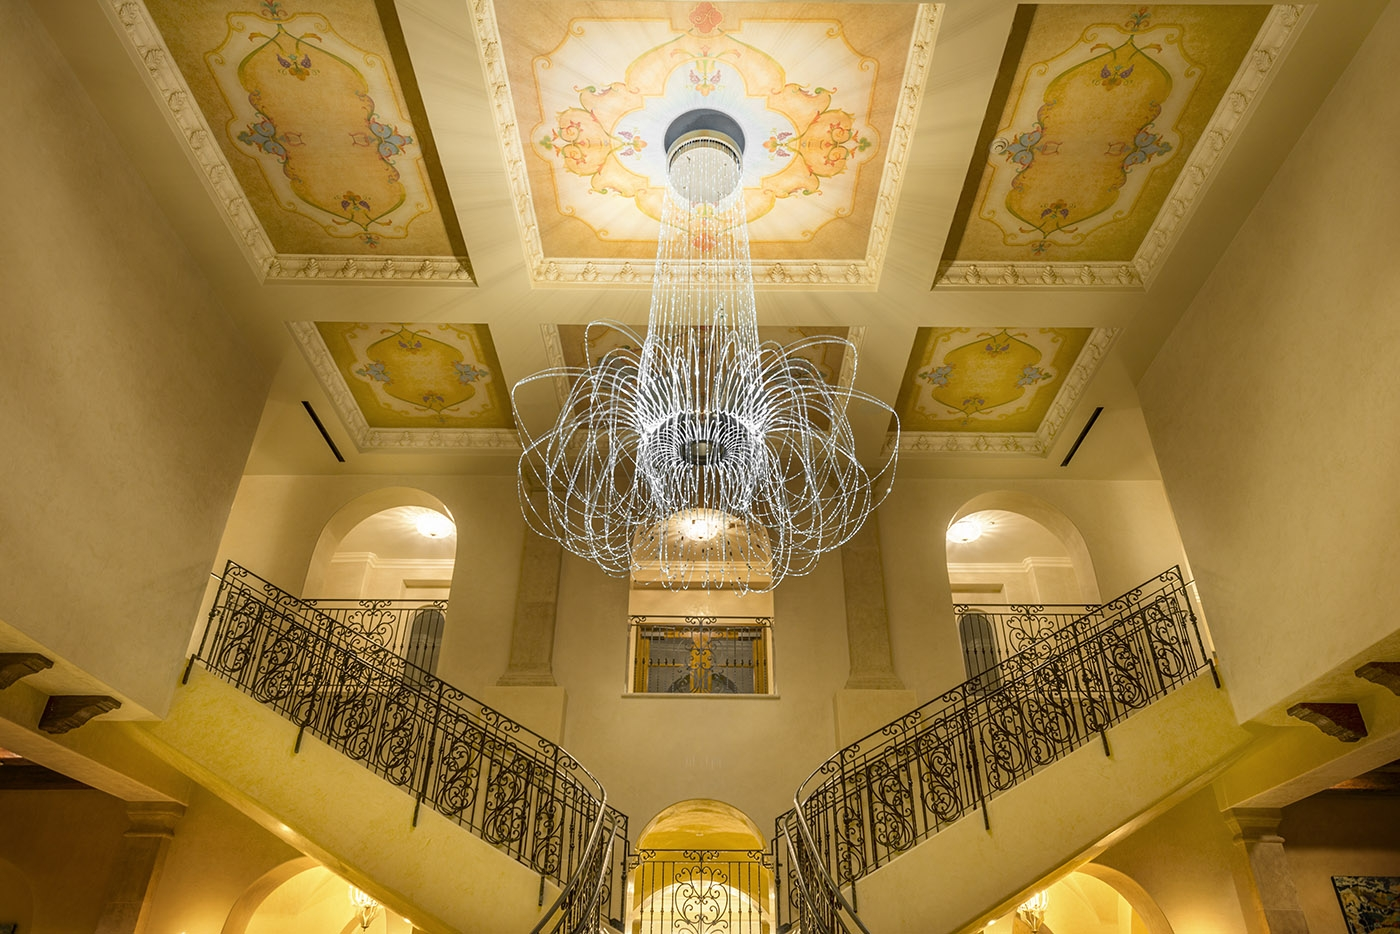 Allegretto's two story lobby with painted ceilings and split sta